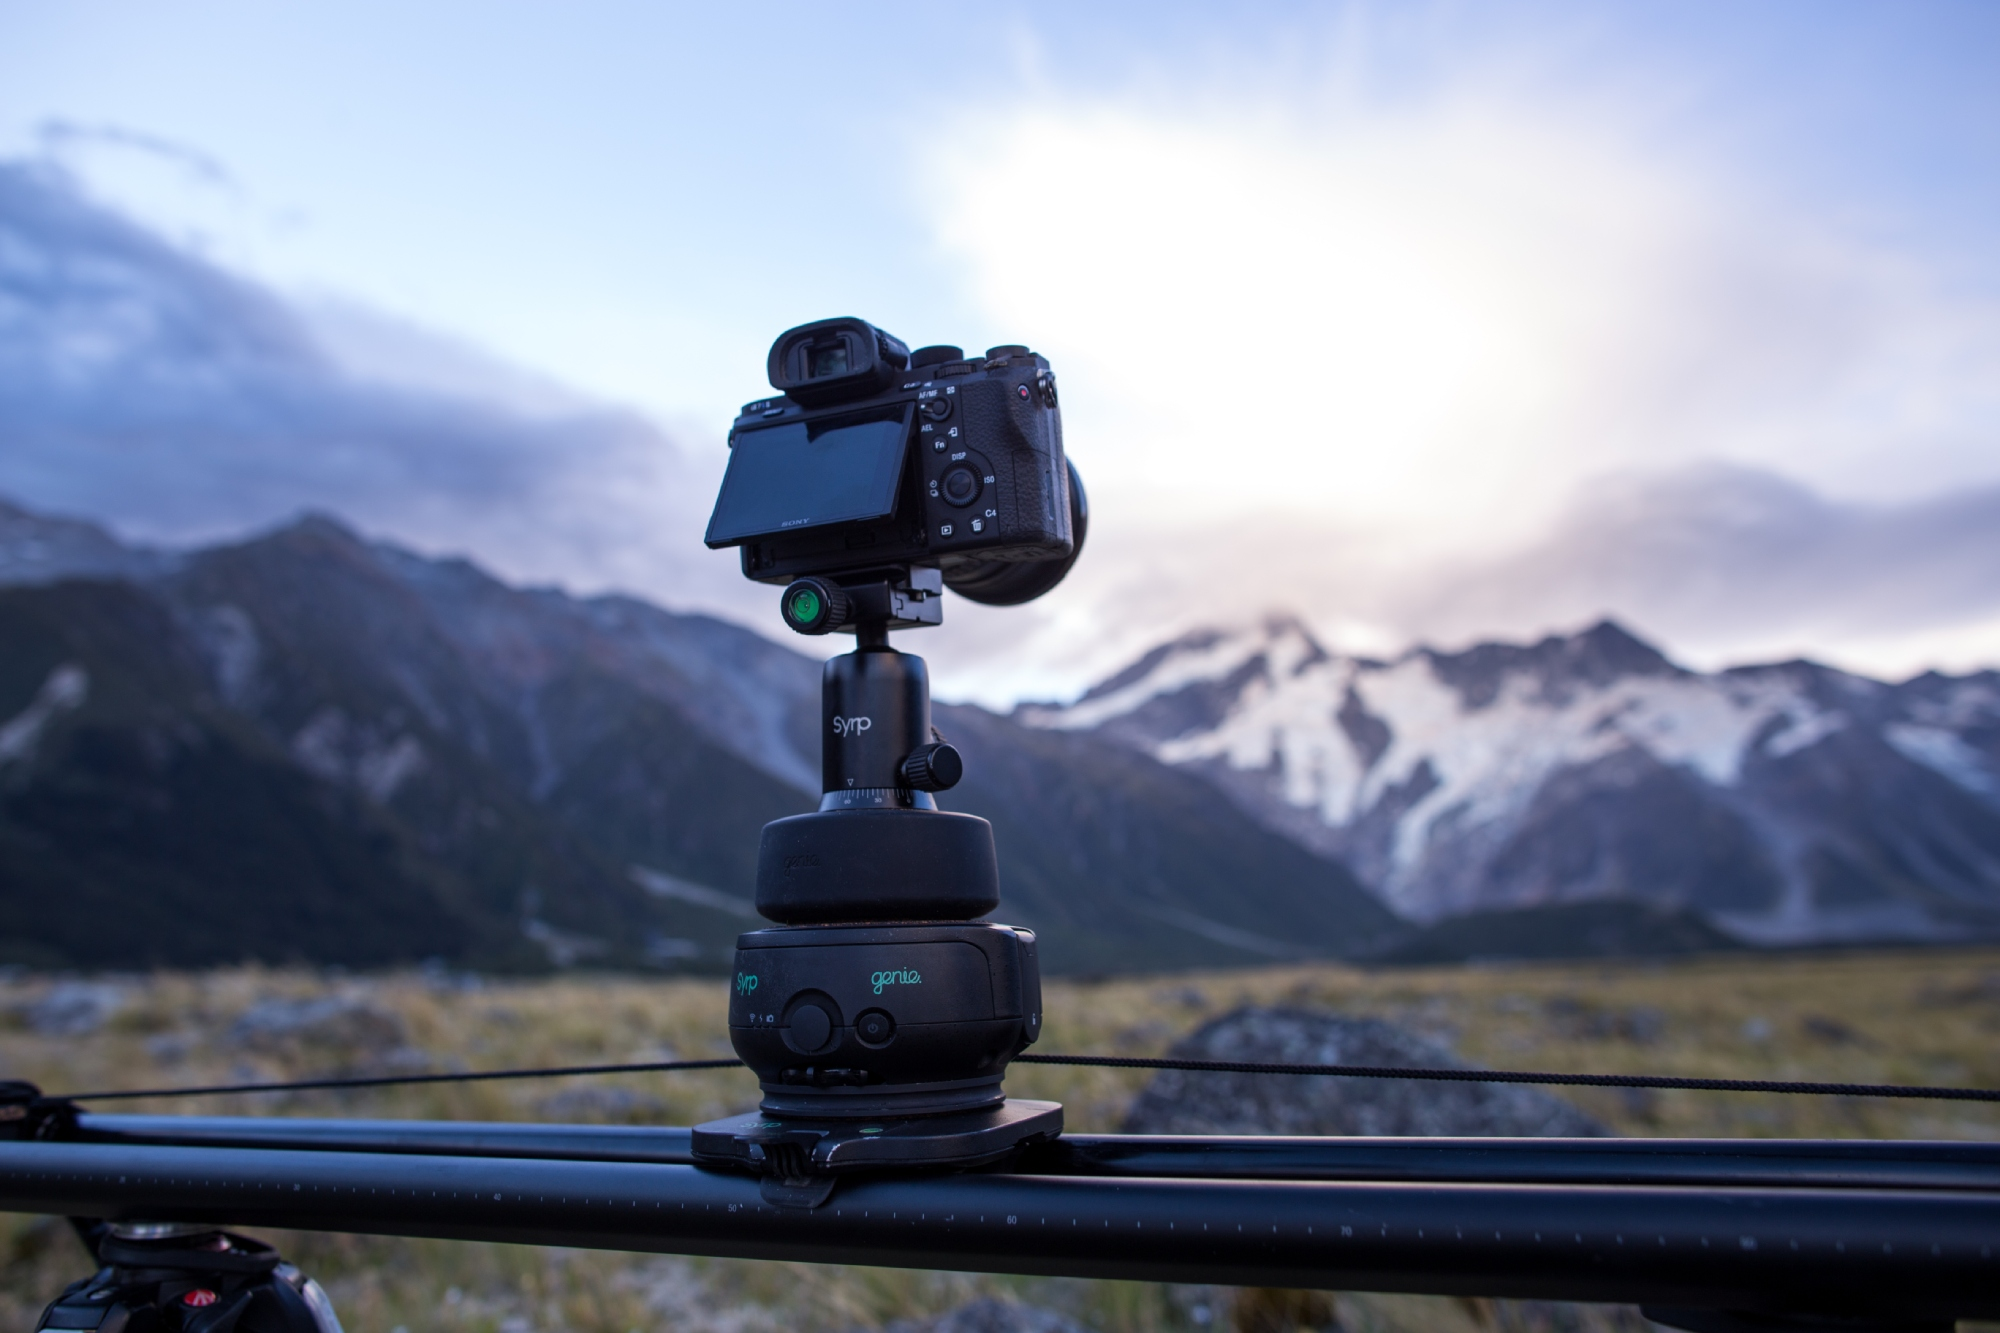 time lapse photography gear tips